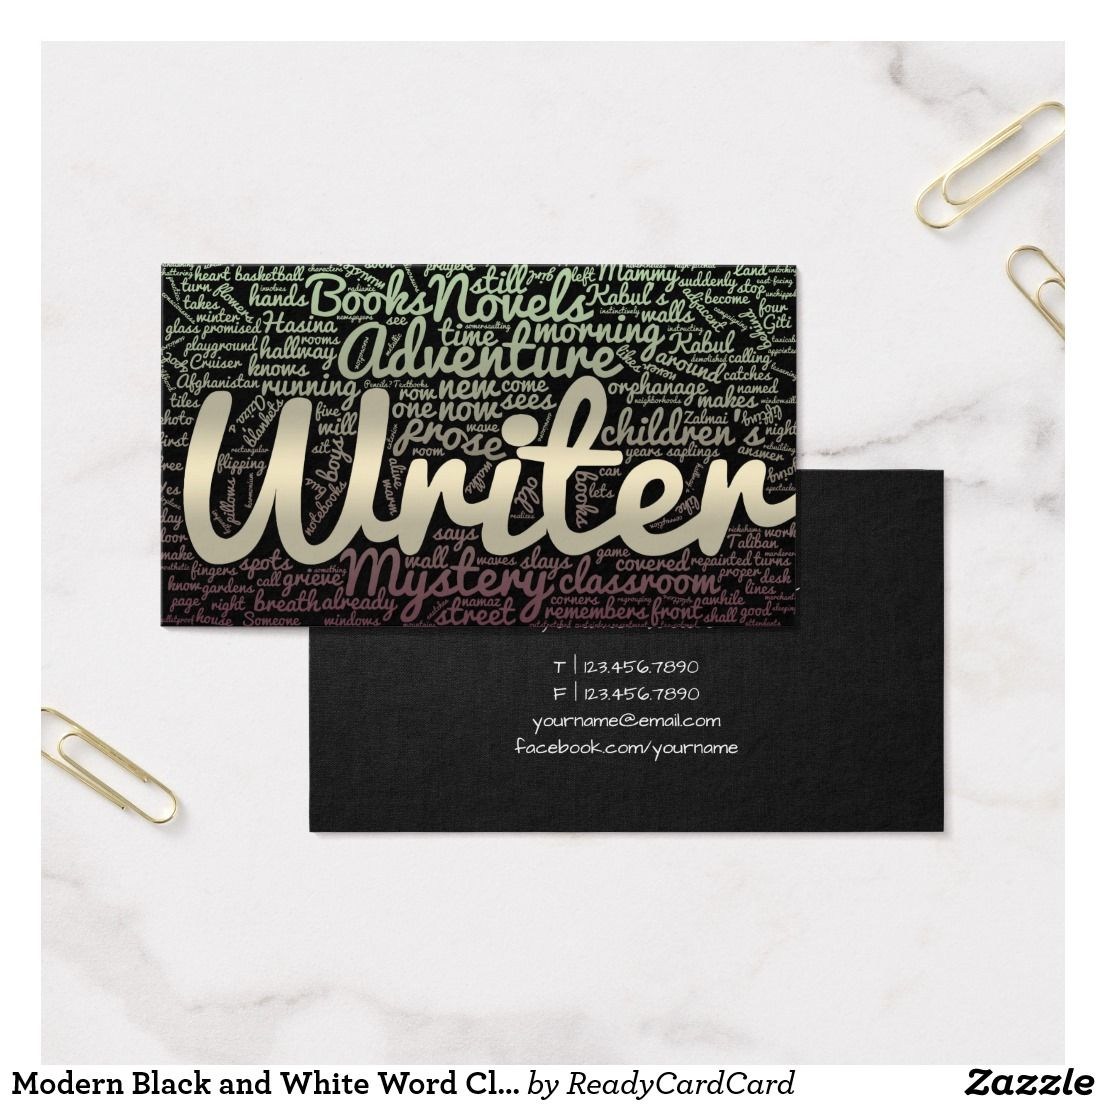 Modern Black and White Word Cloud Writers Authors Business Card ...